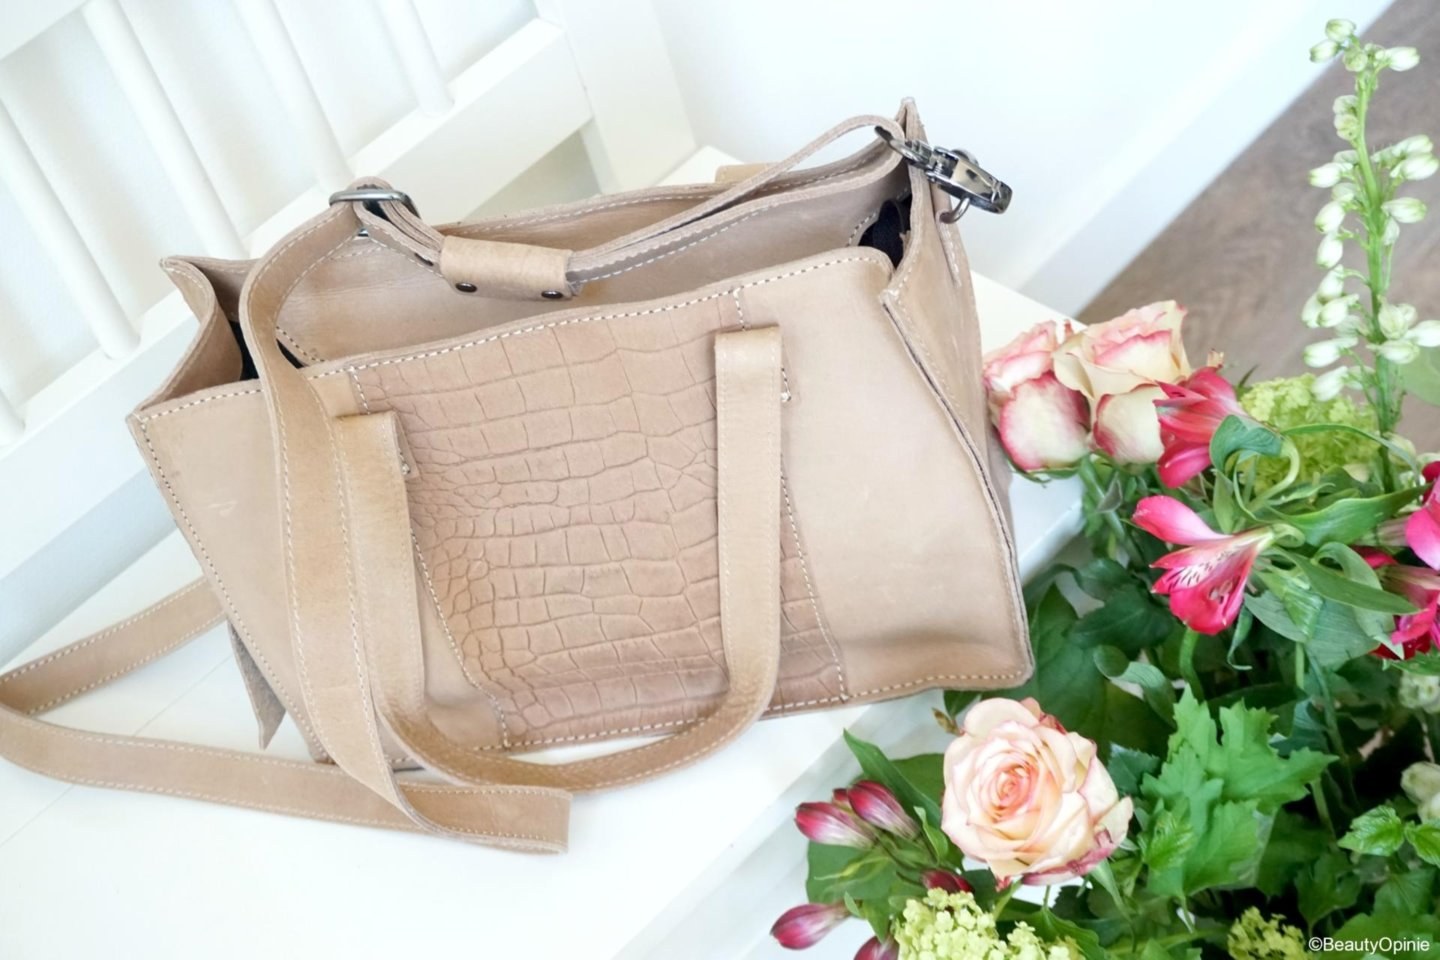 In love! | met mijn Chabo Bag